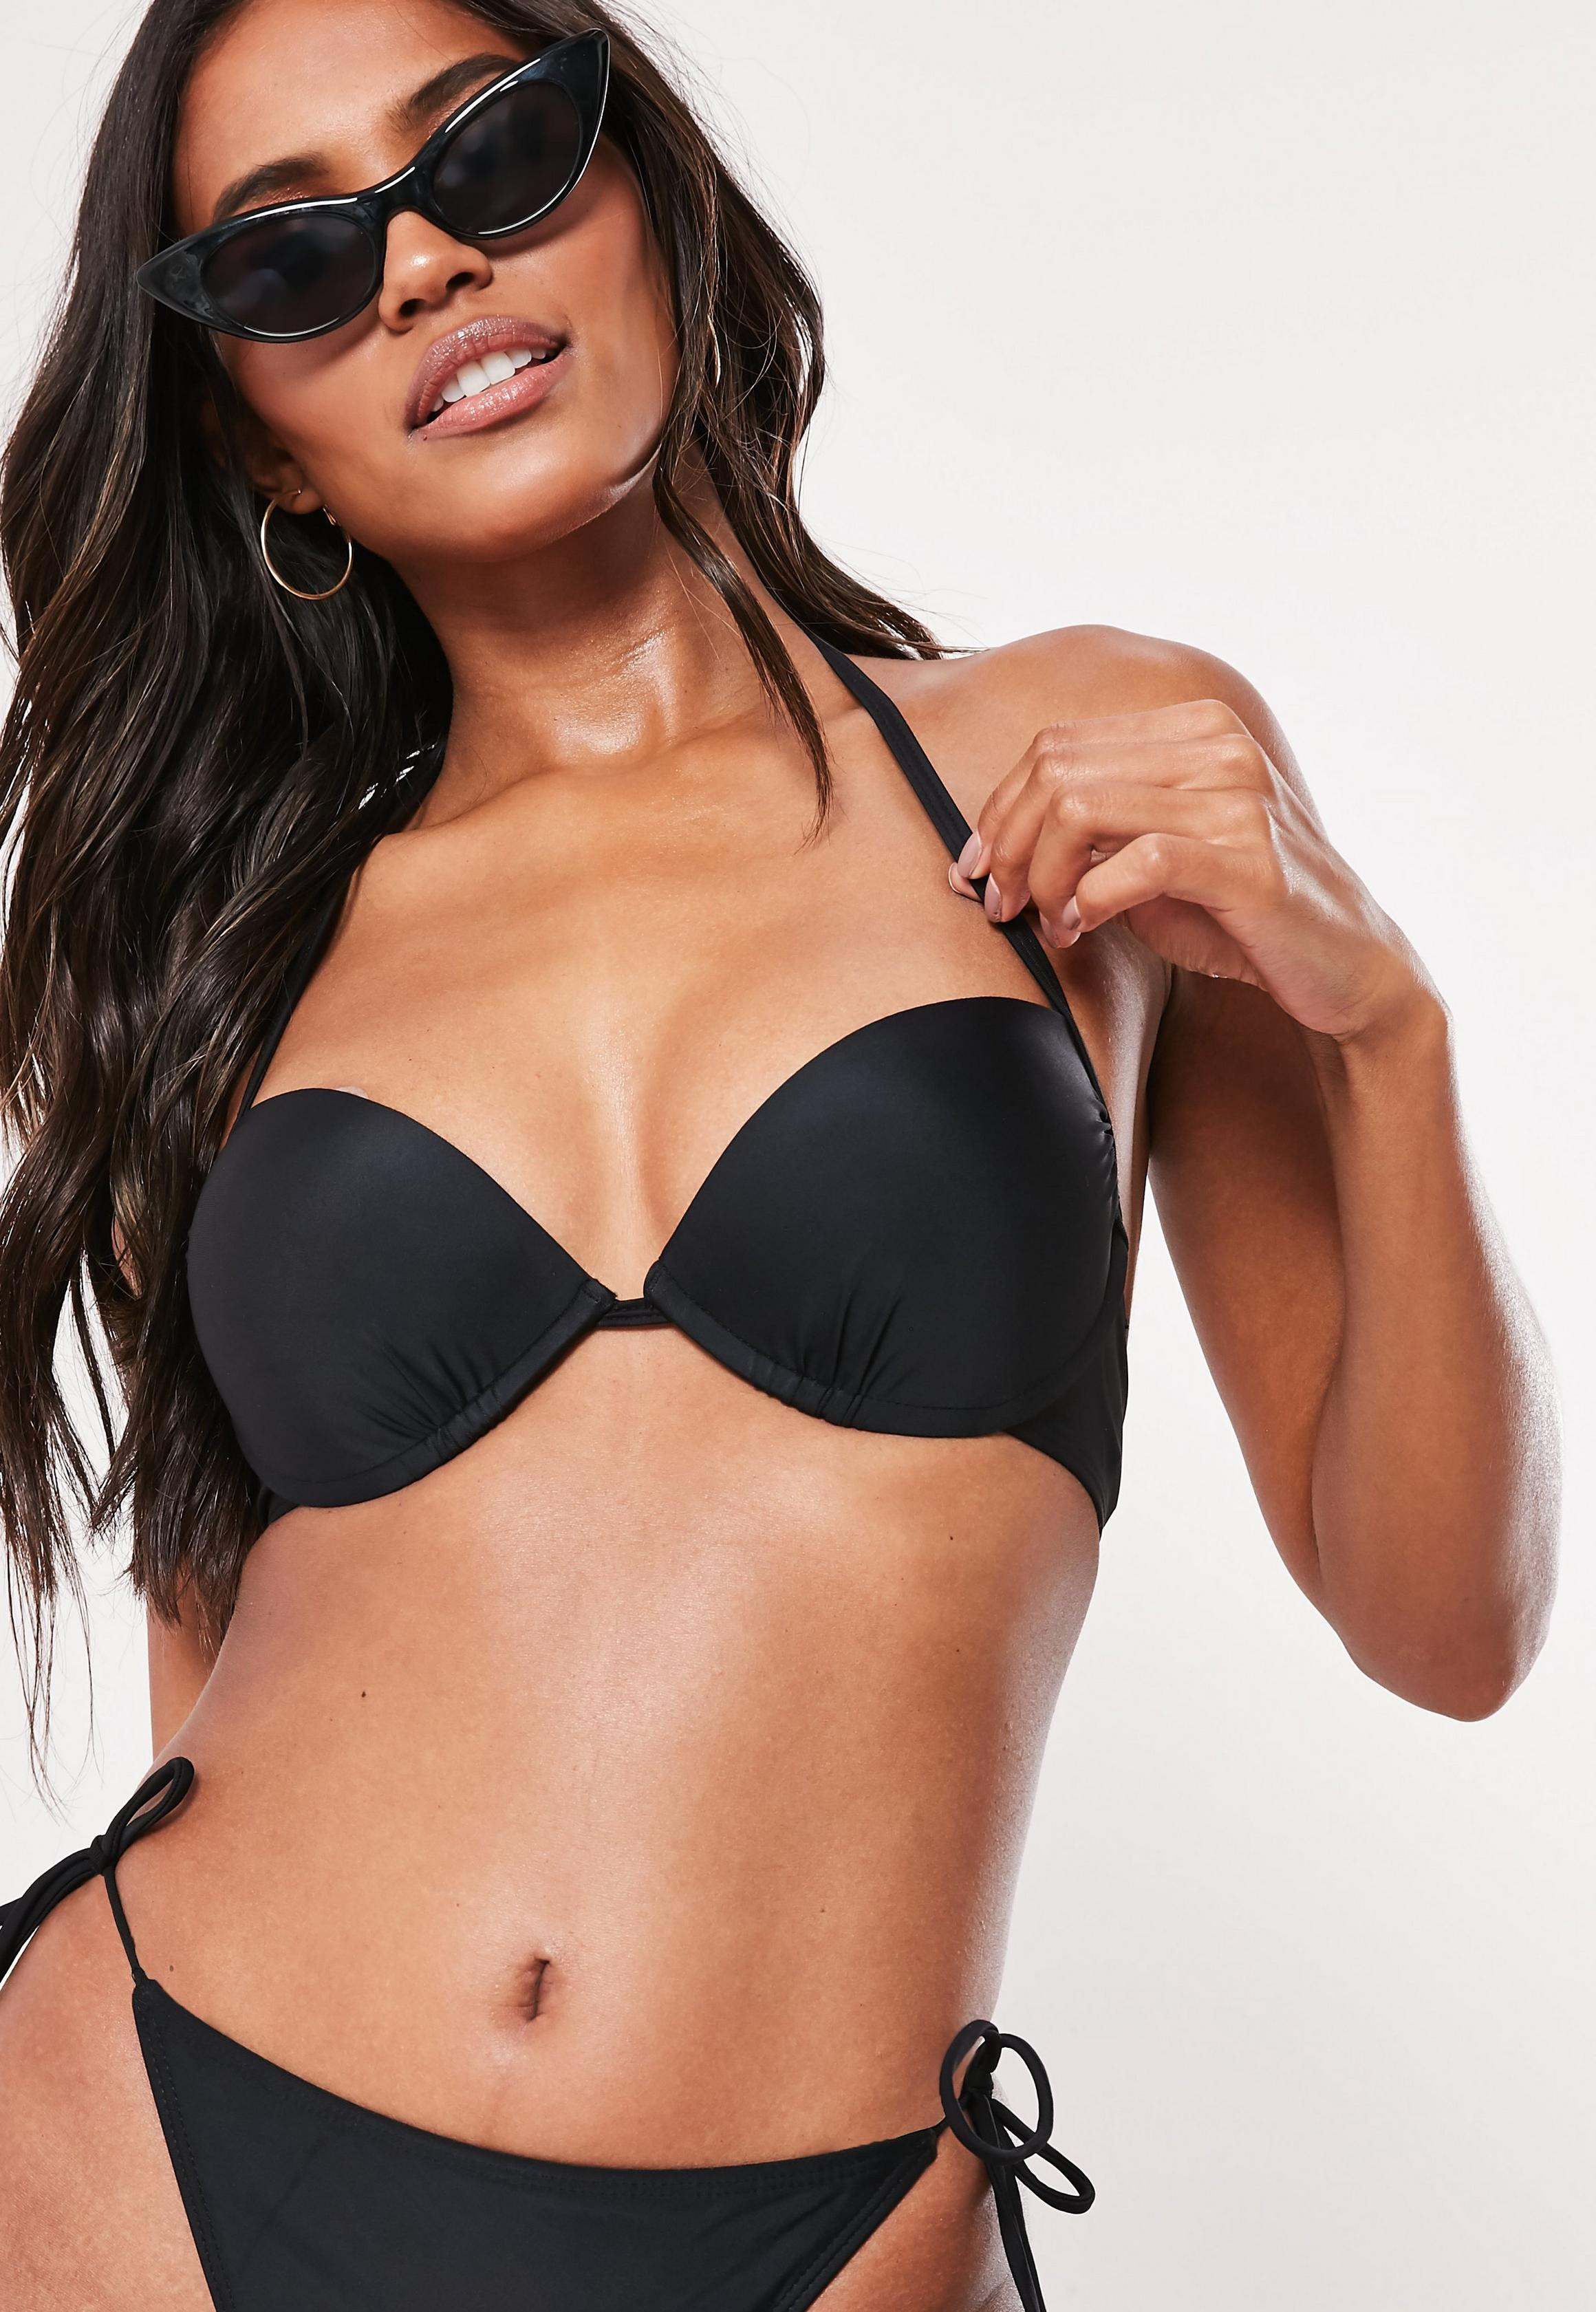 Missguided - Haut de bikini dos nu push up noir - 2